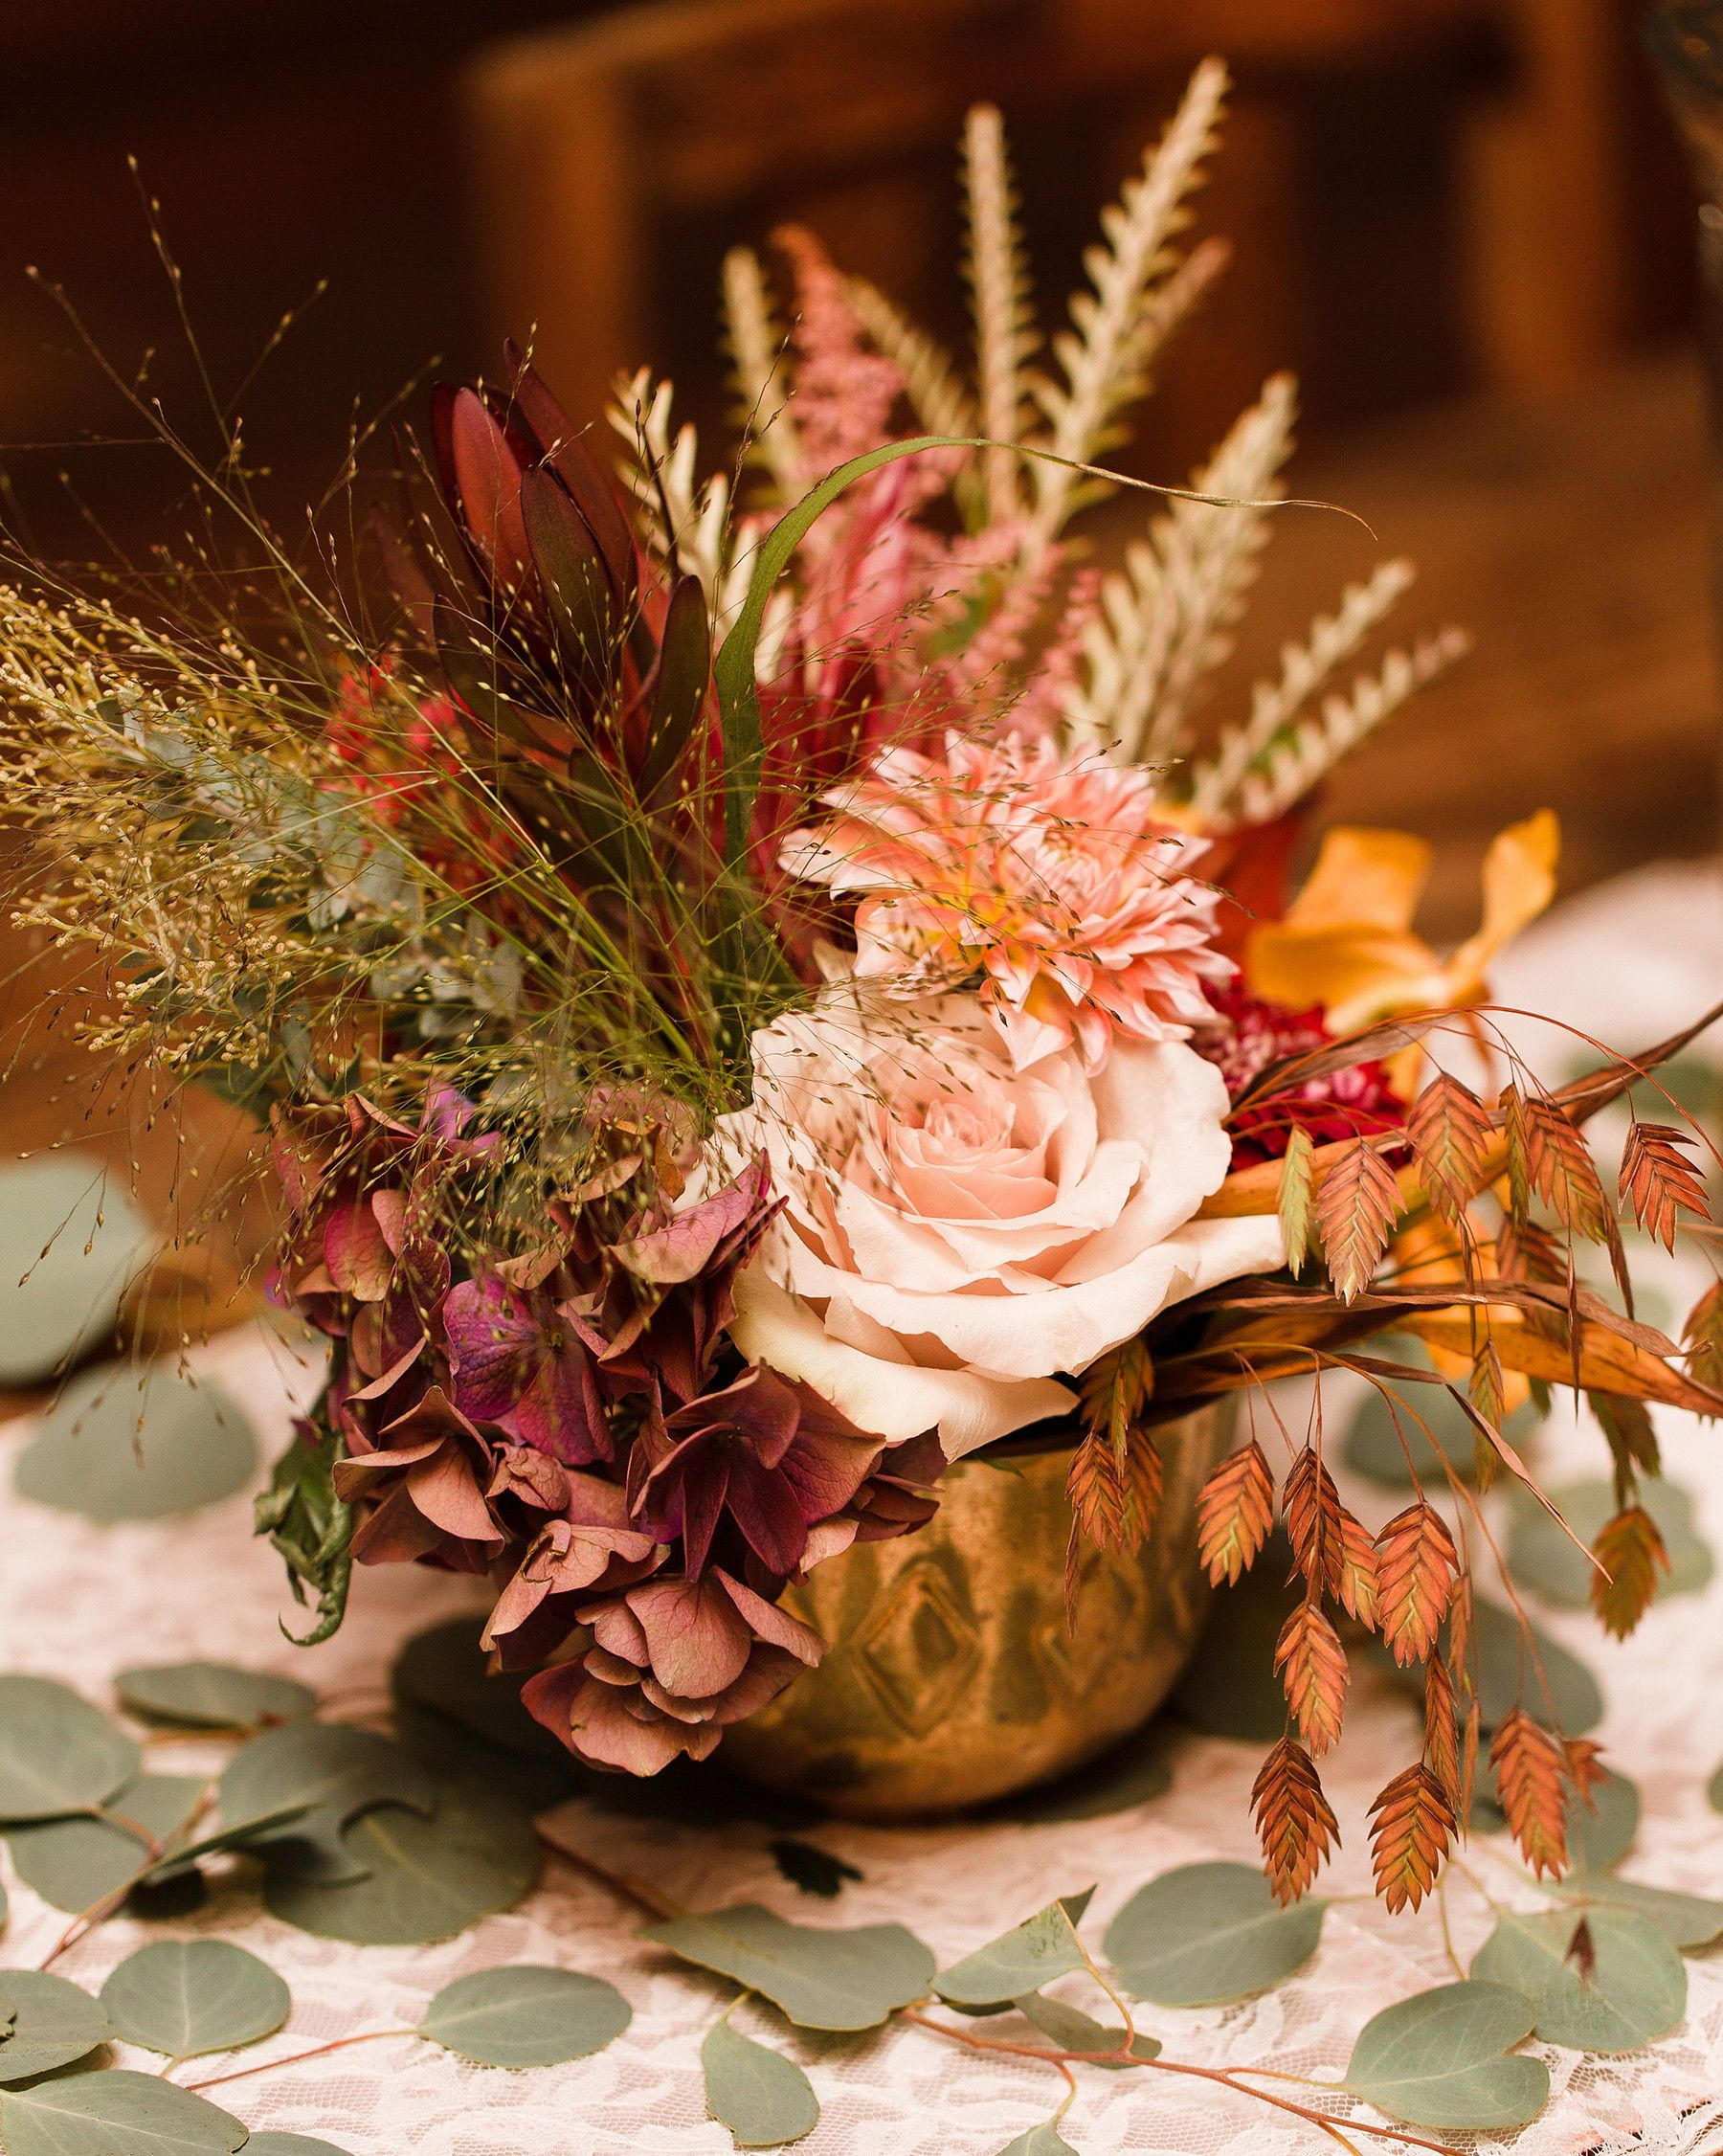 24 Dried Flower Arrangements That Are Perfect For A Fall Wedding Dried Flowers Wedding Fall Flower Arrangements Dried Flower Arrangements